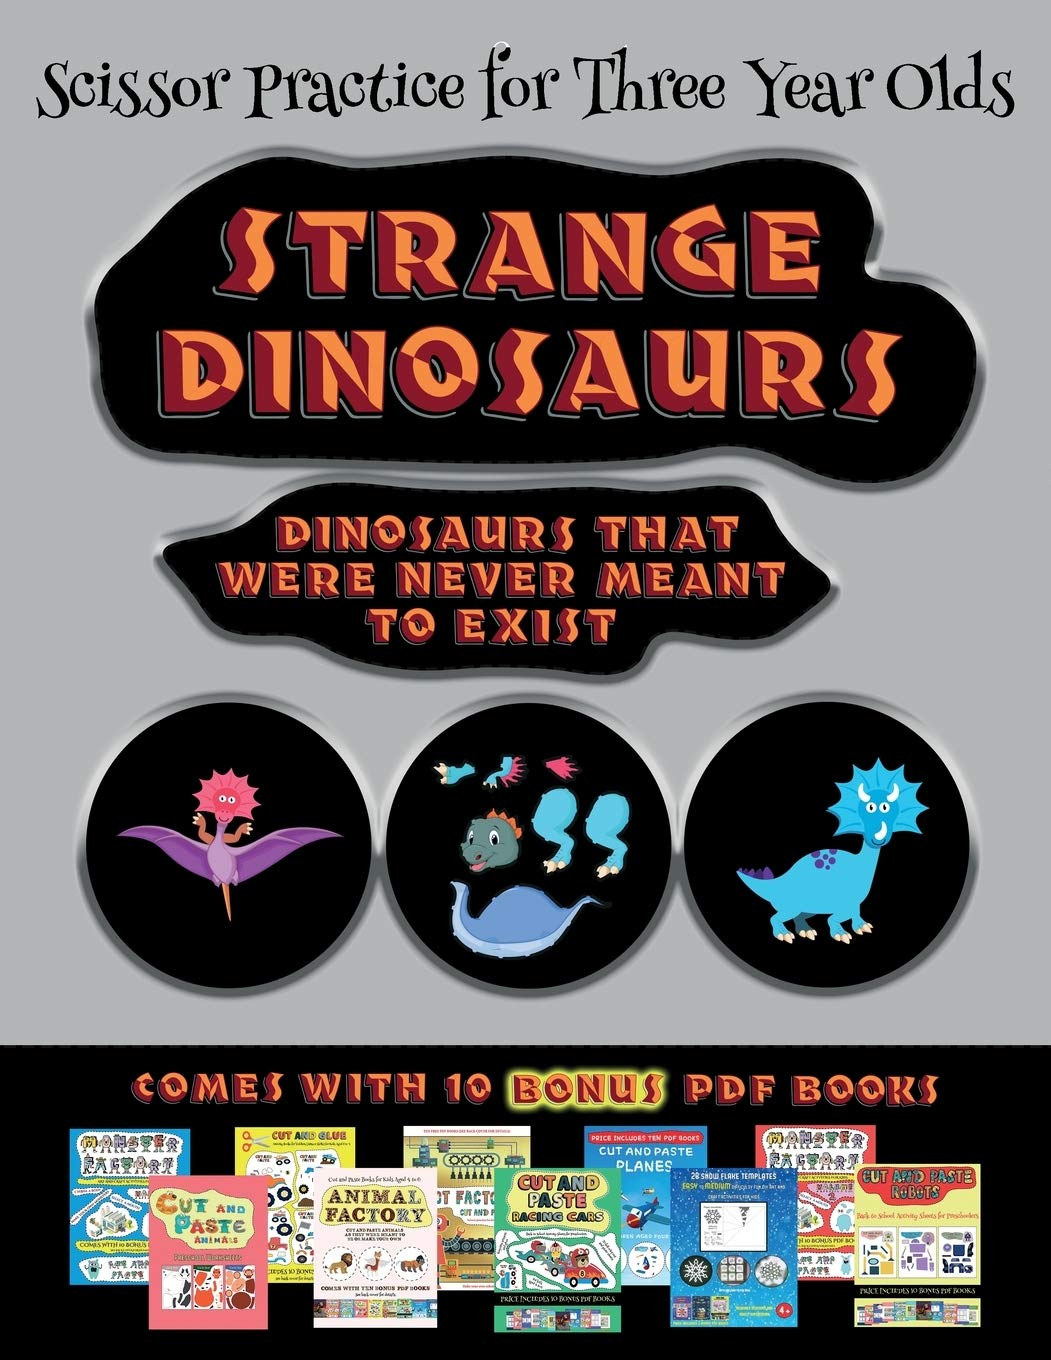 Scissor Practice for Three Year Olds (Strange Dinosaurs - Cut and Paste): This book comes with a collection of downloadable PDF books that will help ... are designed to improve hand-eye coordinat